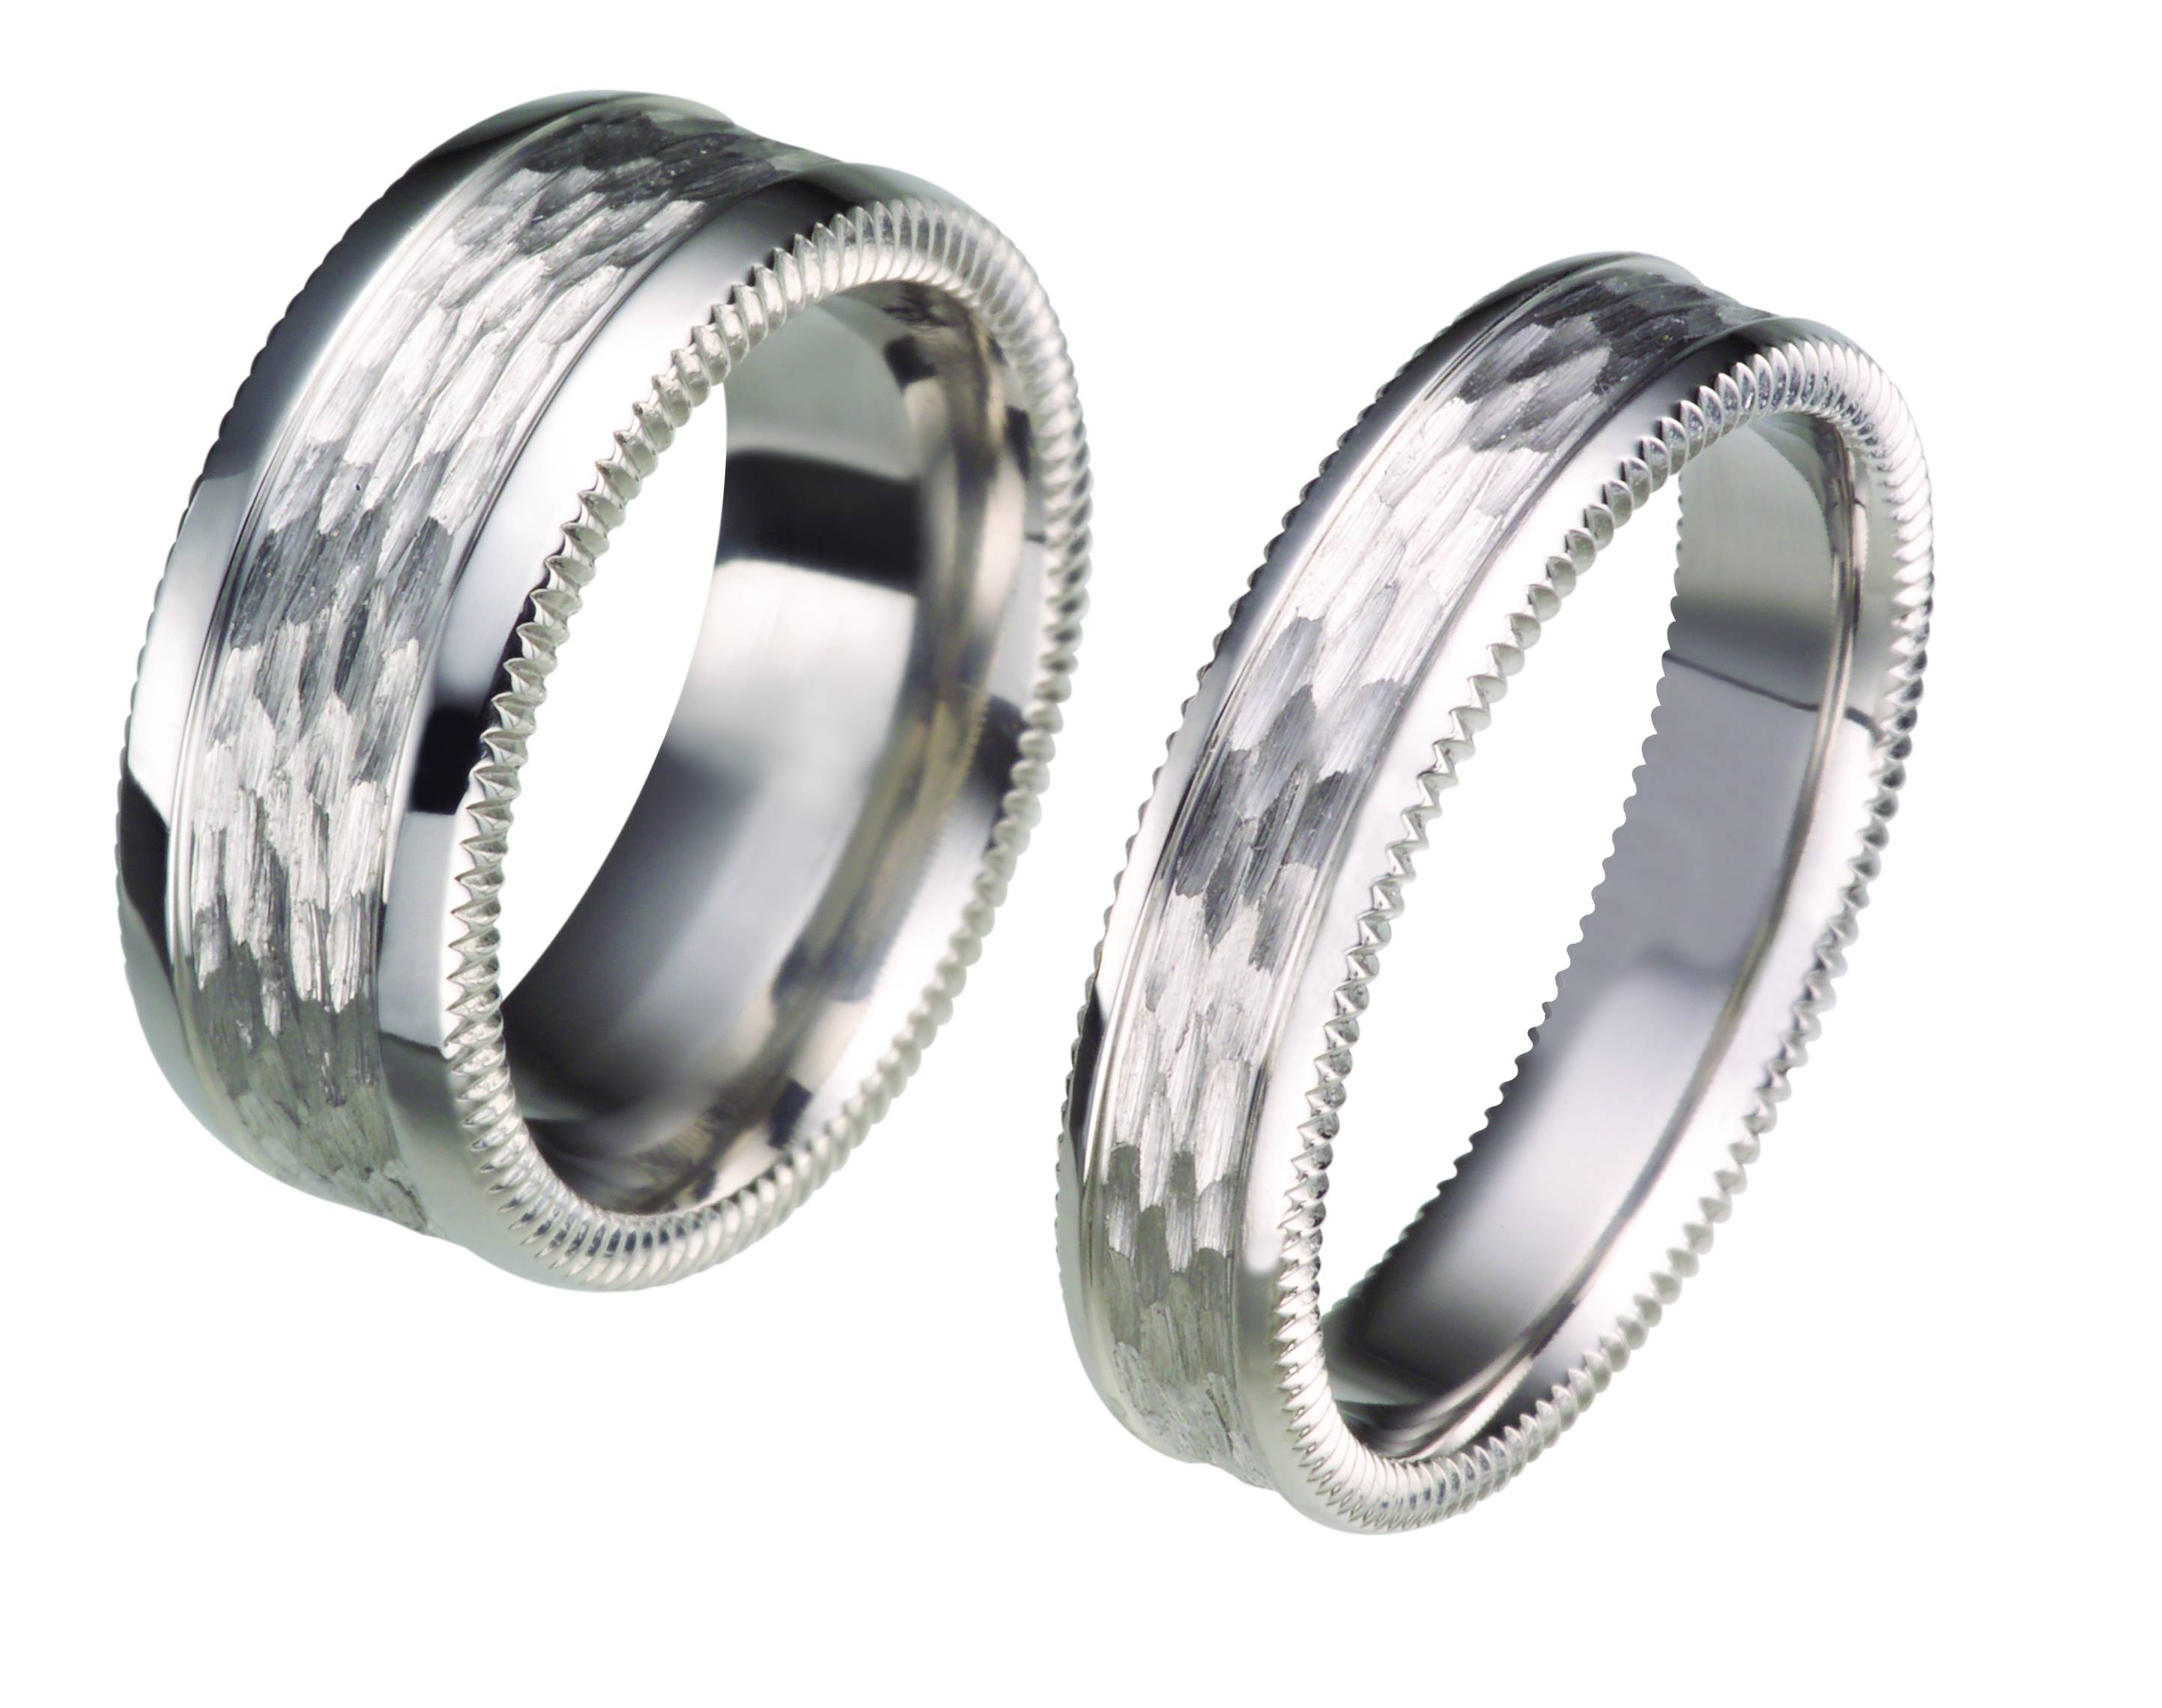 Wedding Rings : Mens Platinum Wedding Rings Female Wedding Rings For Most Recently Released Platnium Wedding Bands (View 14 of 15)